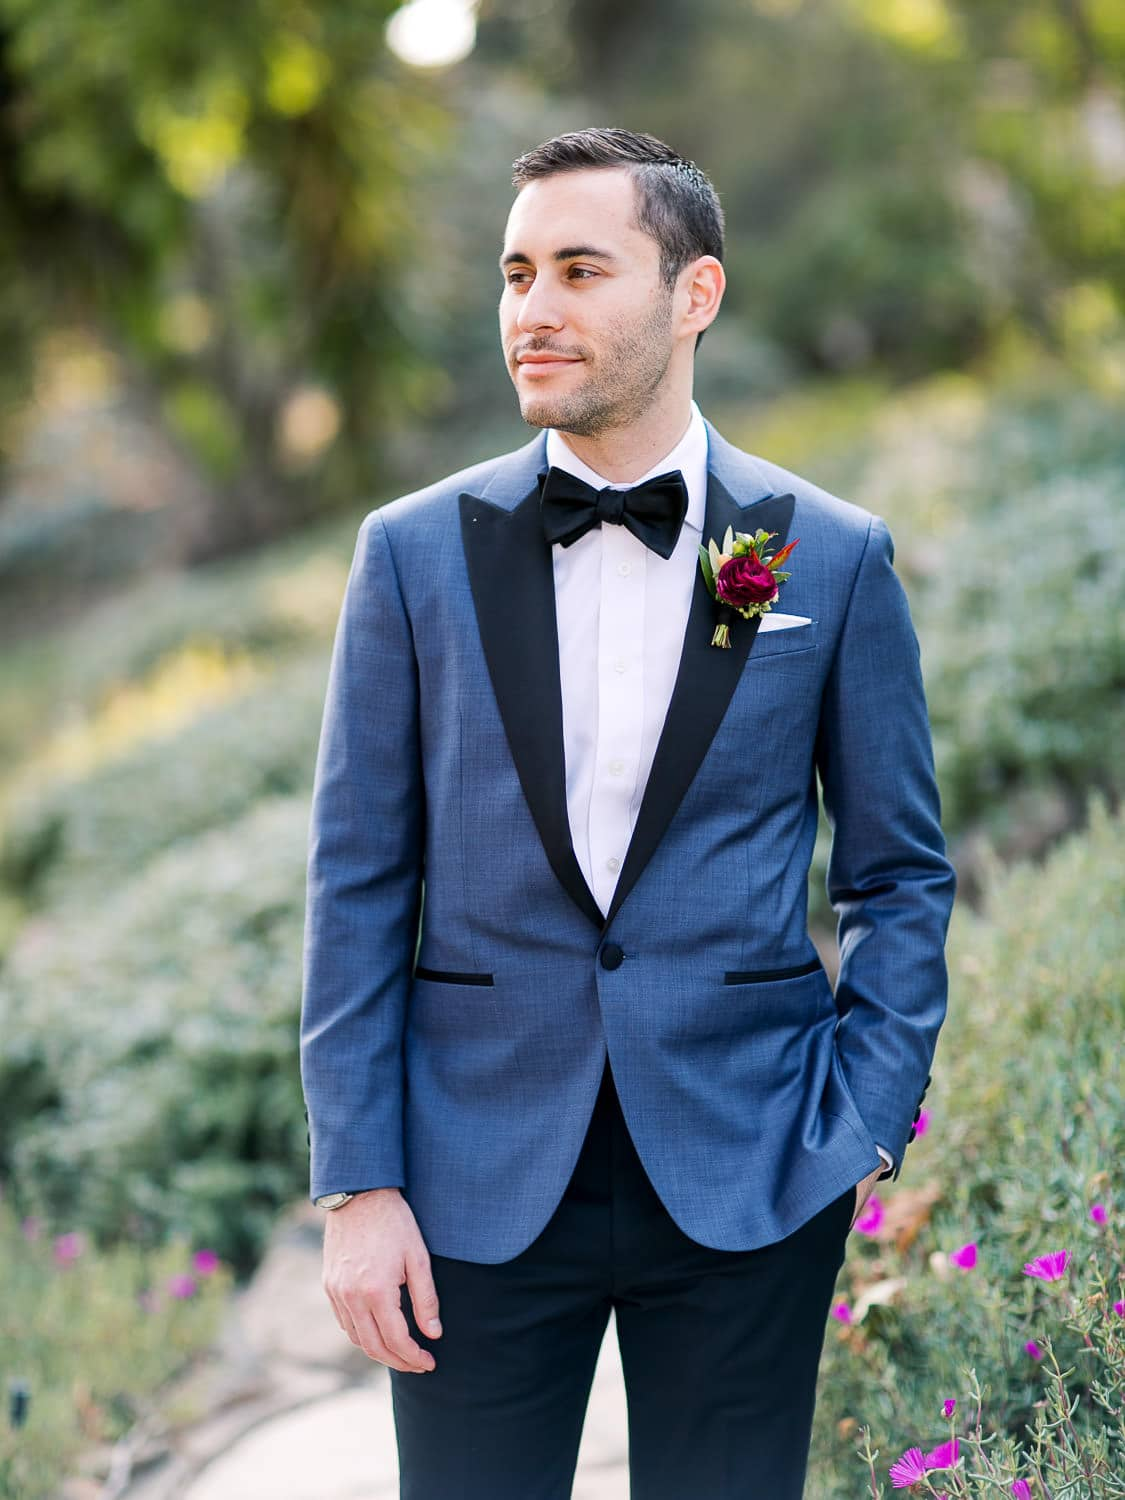 Groom-First-Look-Inspiration-Greg-Ross